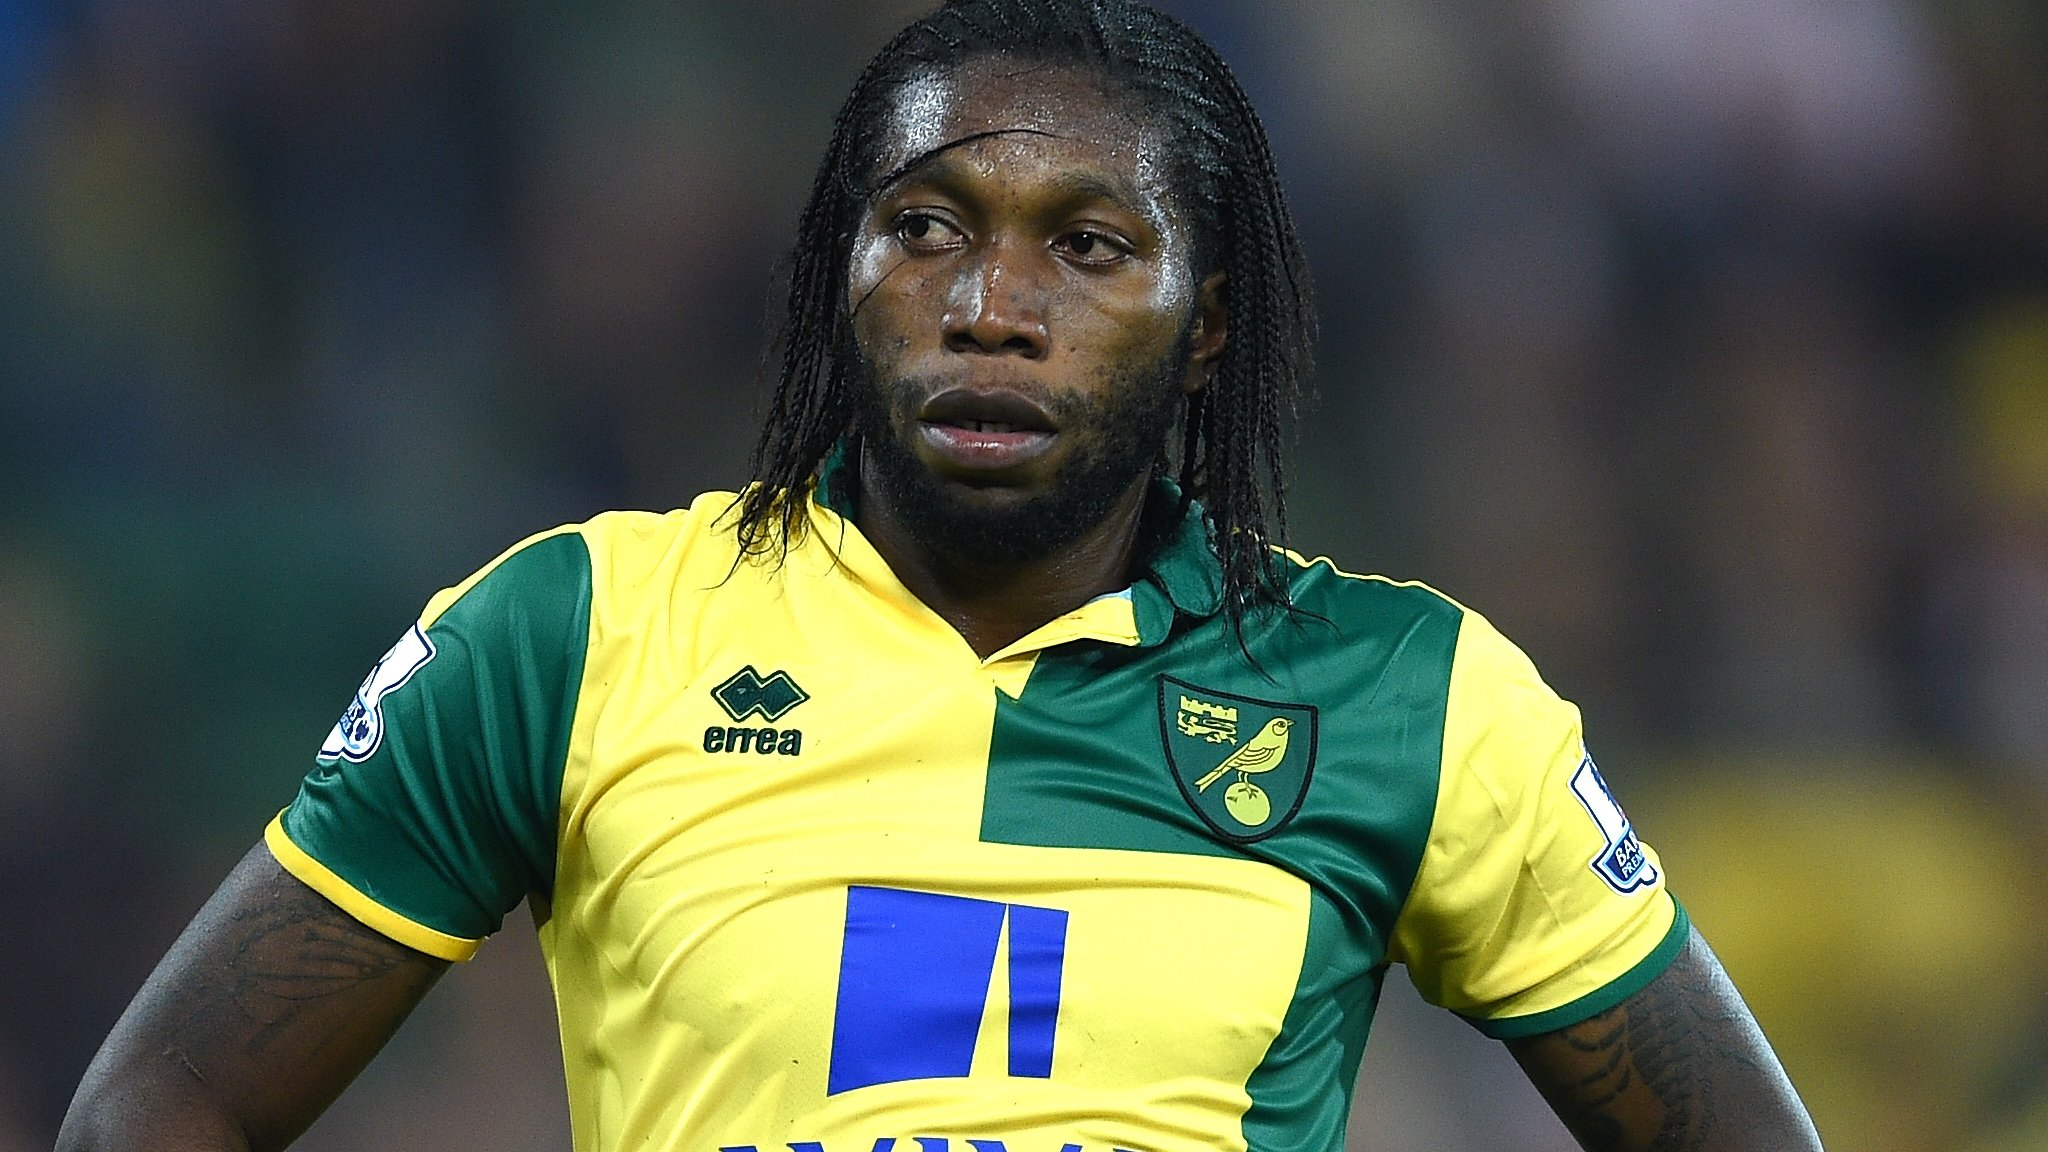 Hull City: Dieumerci Mbokani, James Weir & Markus Henriksen sign deals